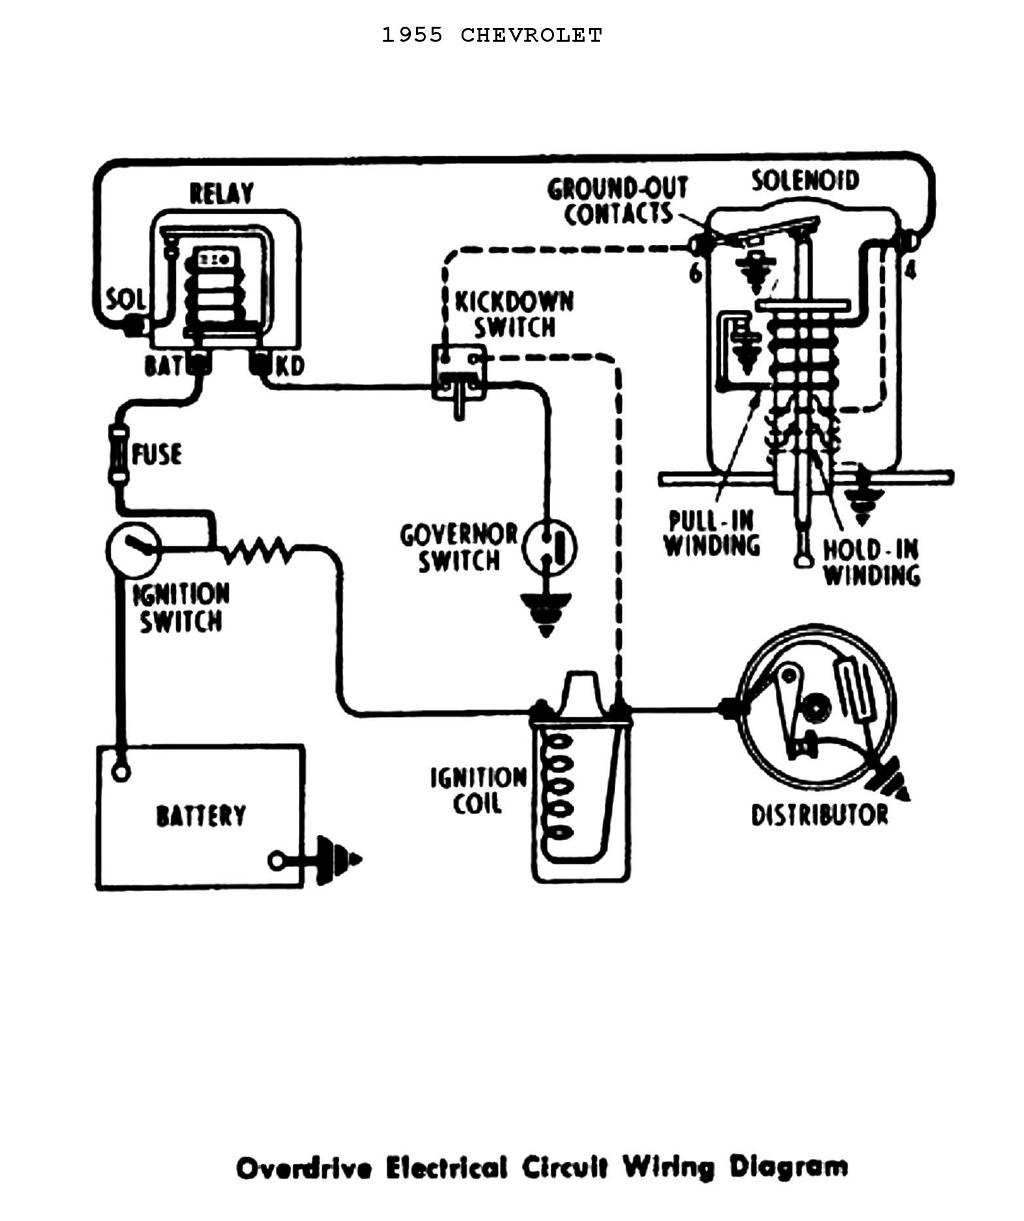 wiring diagram besides 1968 ford f100 brake light wiring diagram on